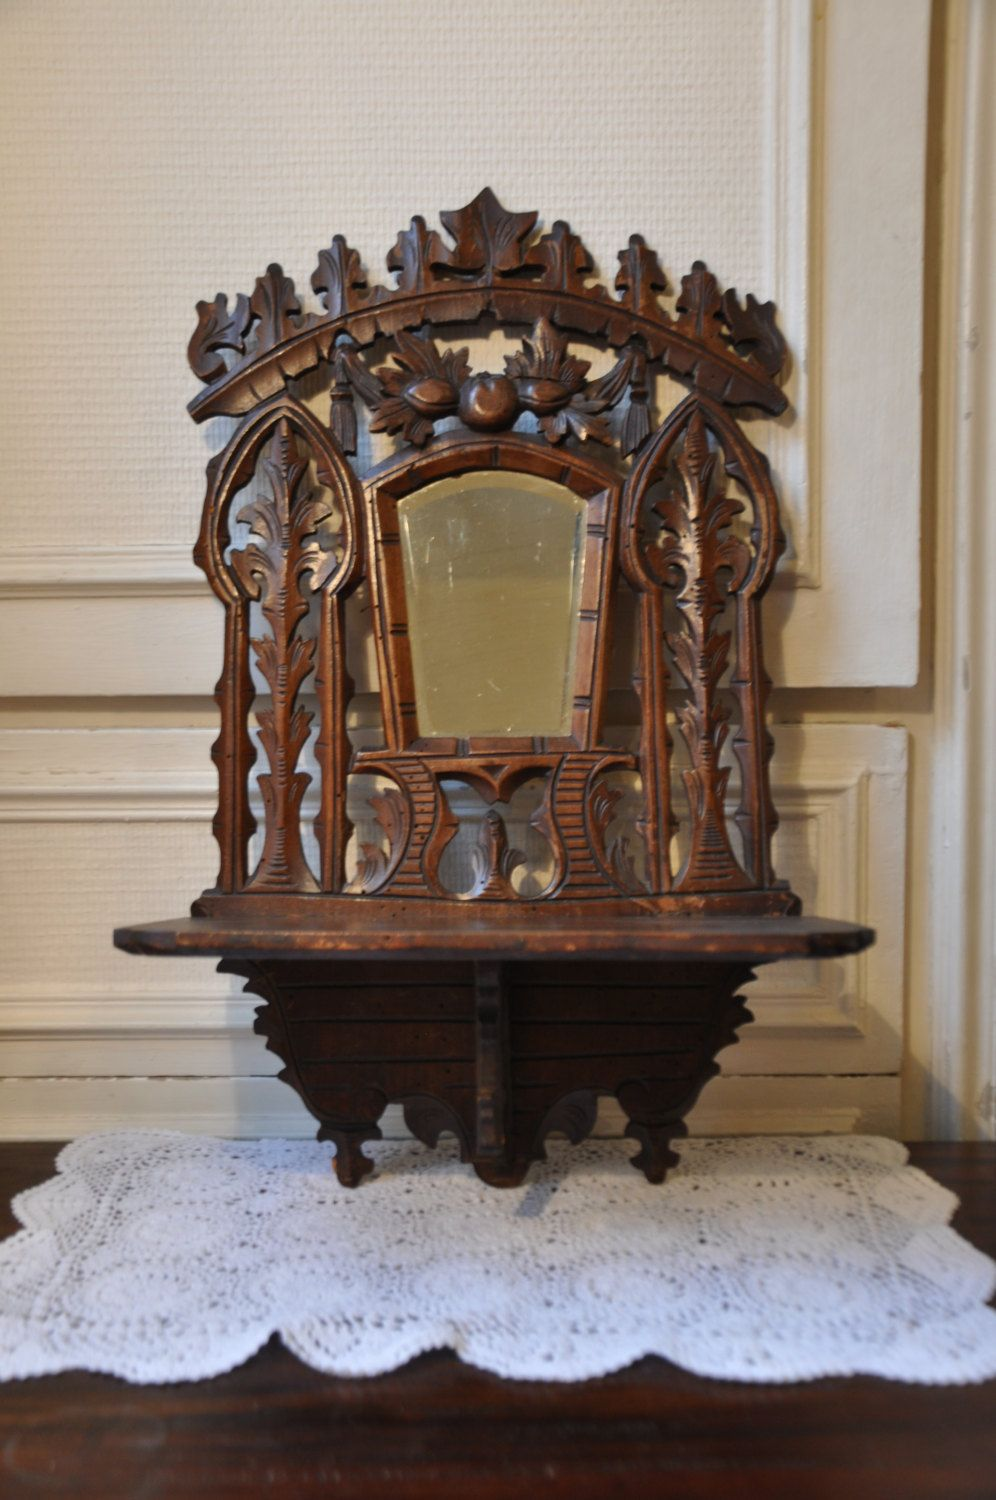 1800s Antique Carved Wooden Wall Shelf Solid Wood Display Shelf